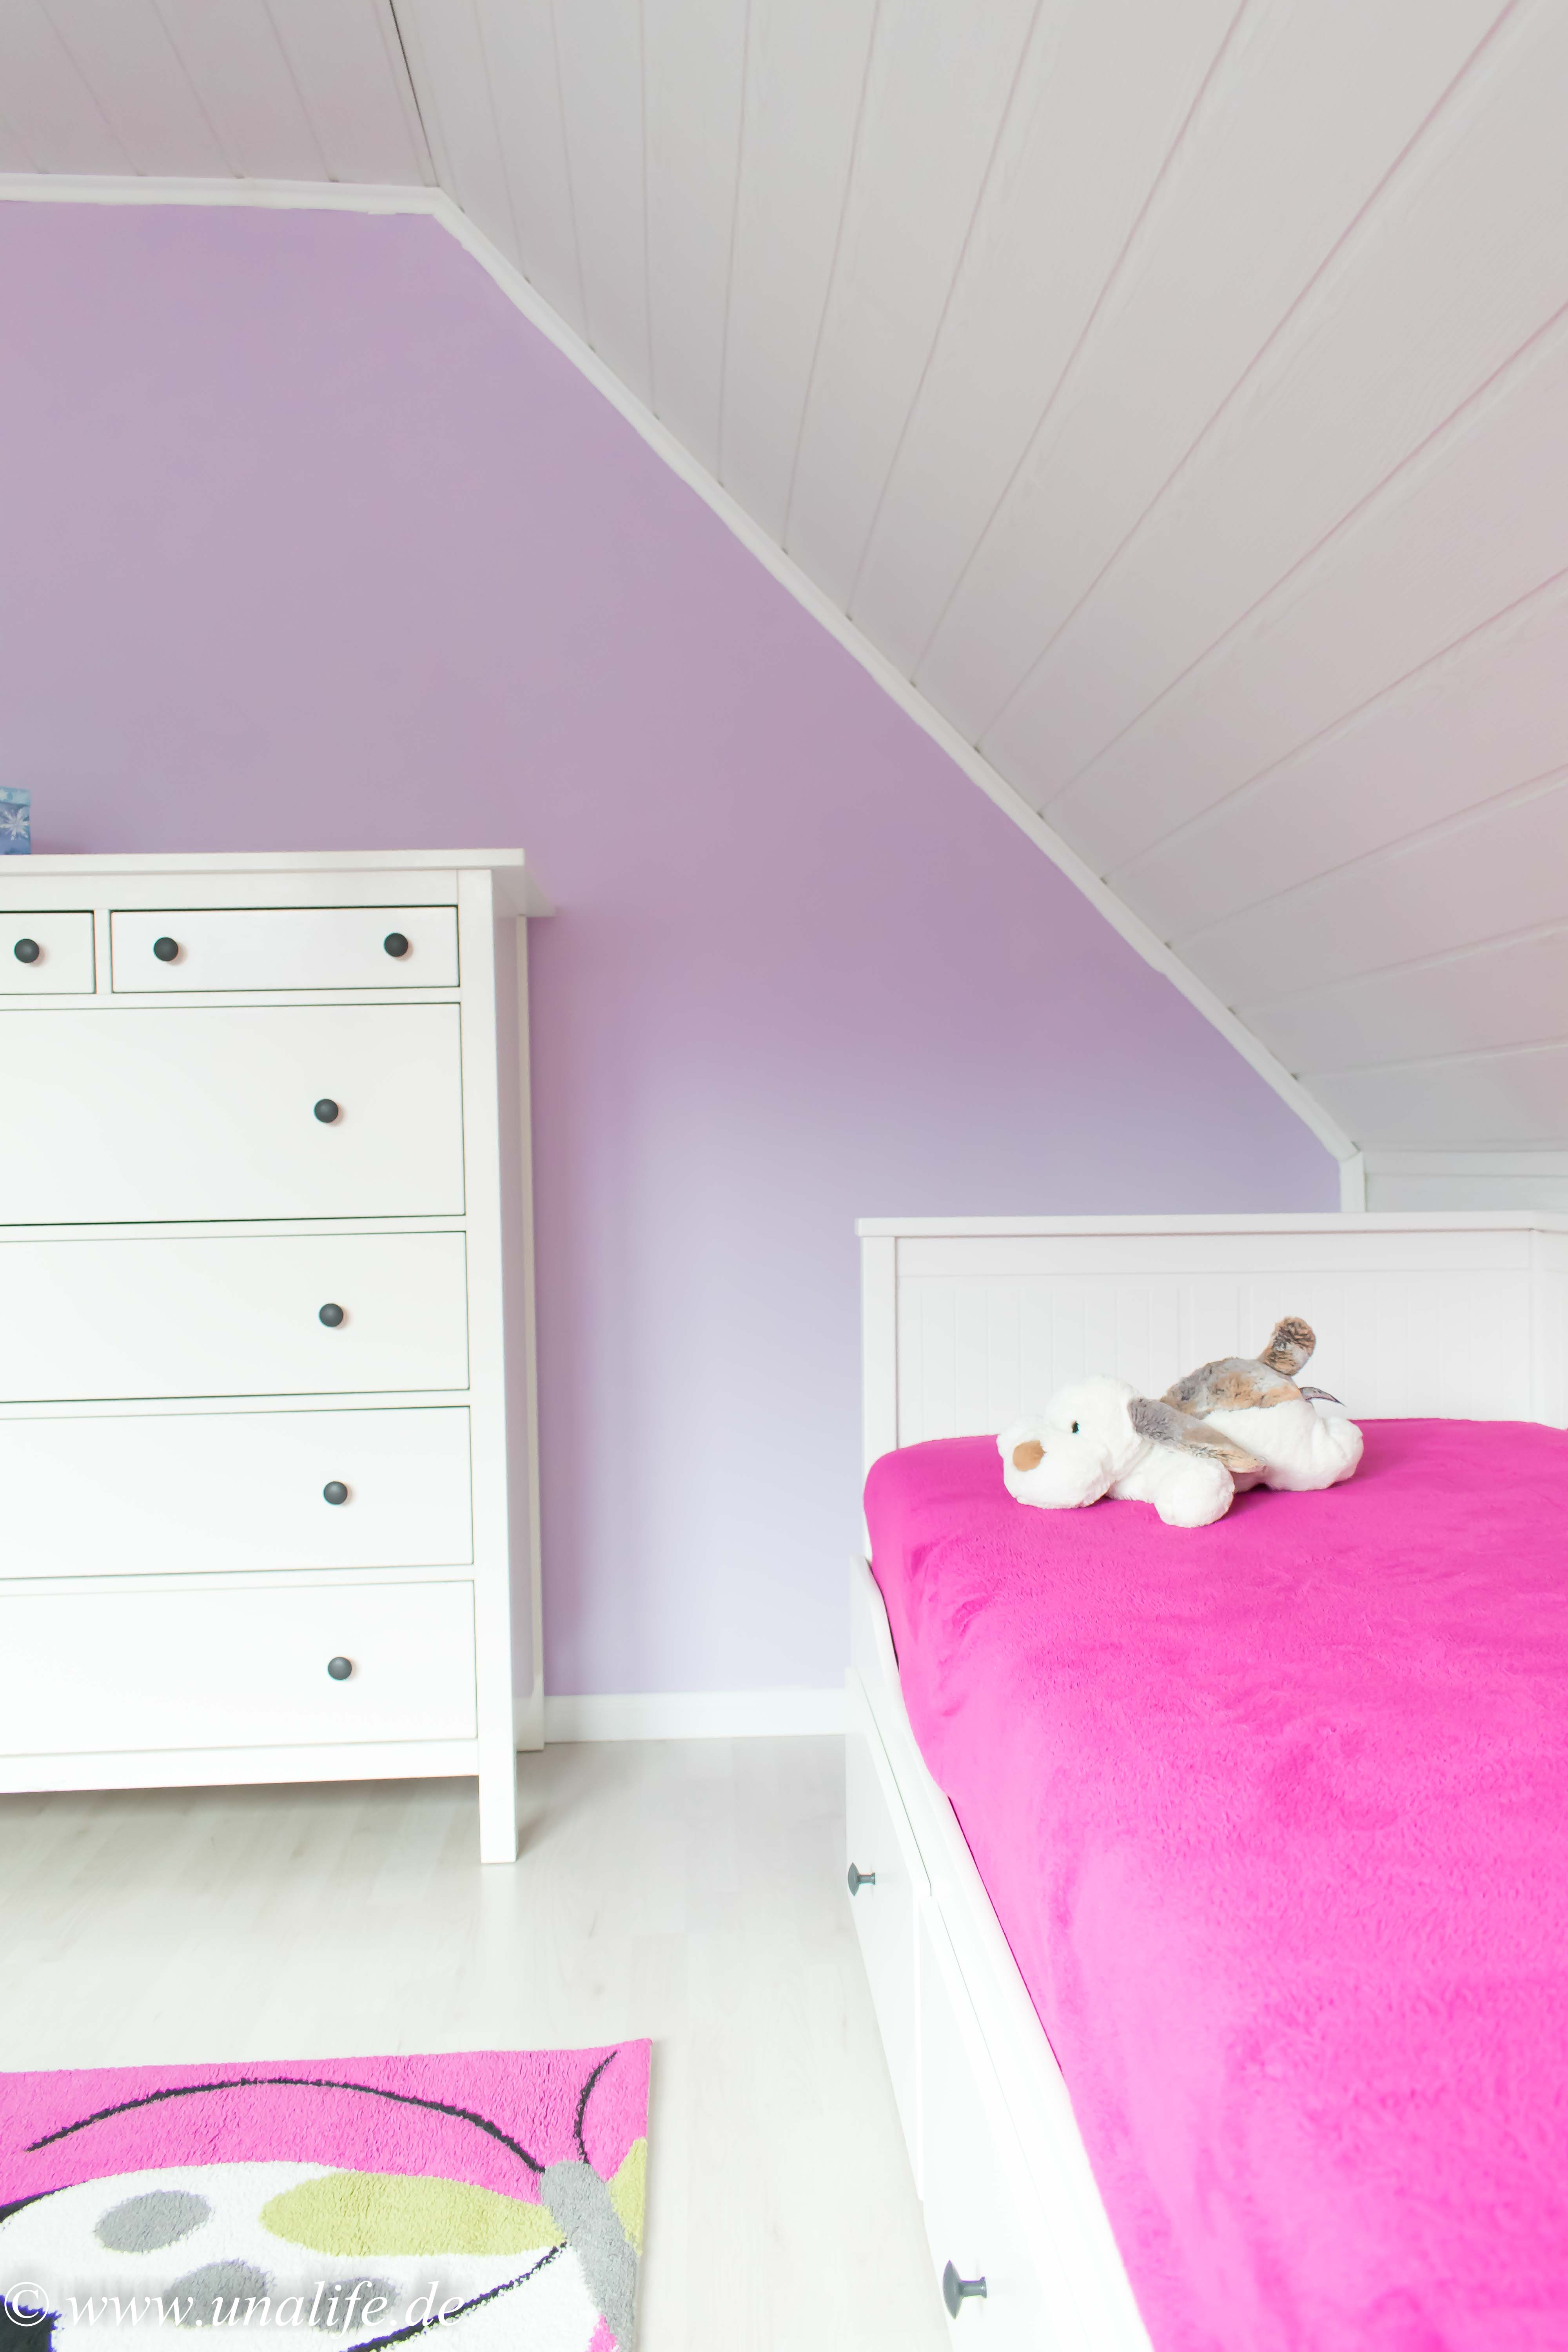 pastellfarben im kinderzimmer ikea hemnes suche nach dem ausgefallenen b cherregal unalife. Black Bedroom Furniture Sets. Home Design Ideas